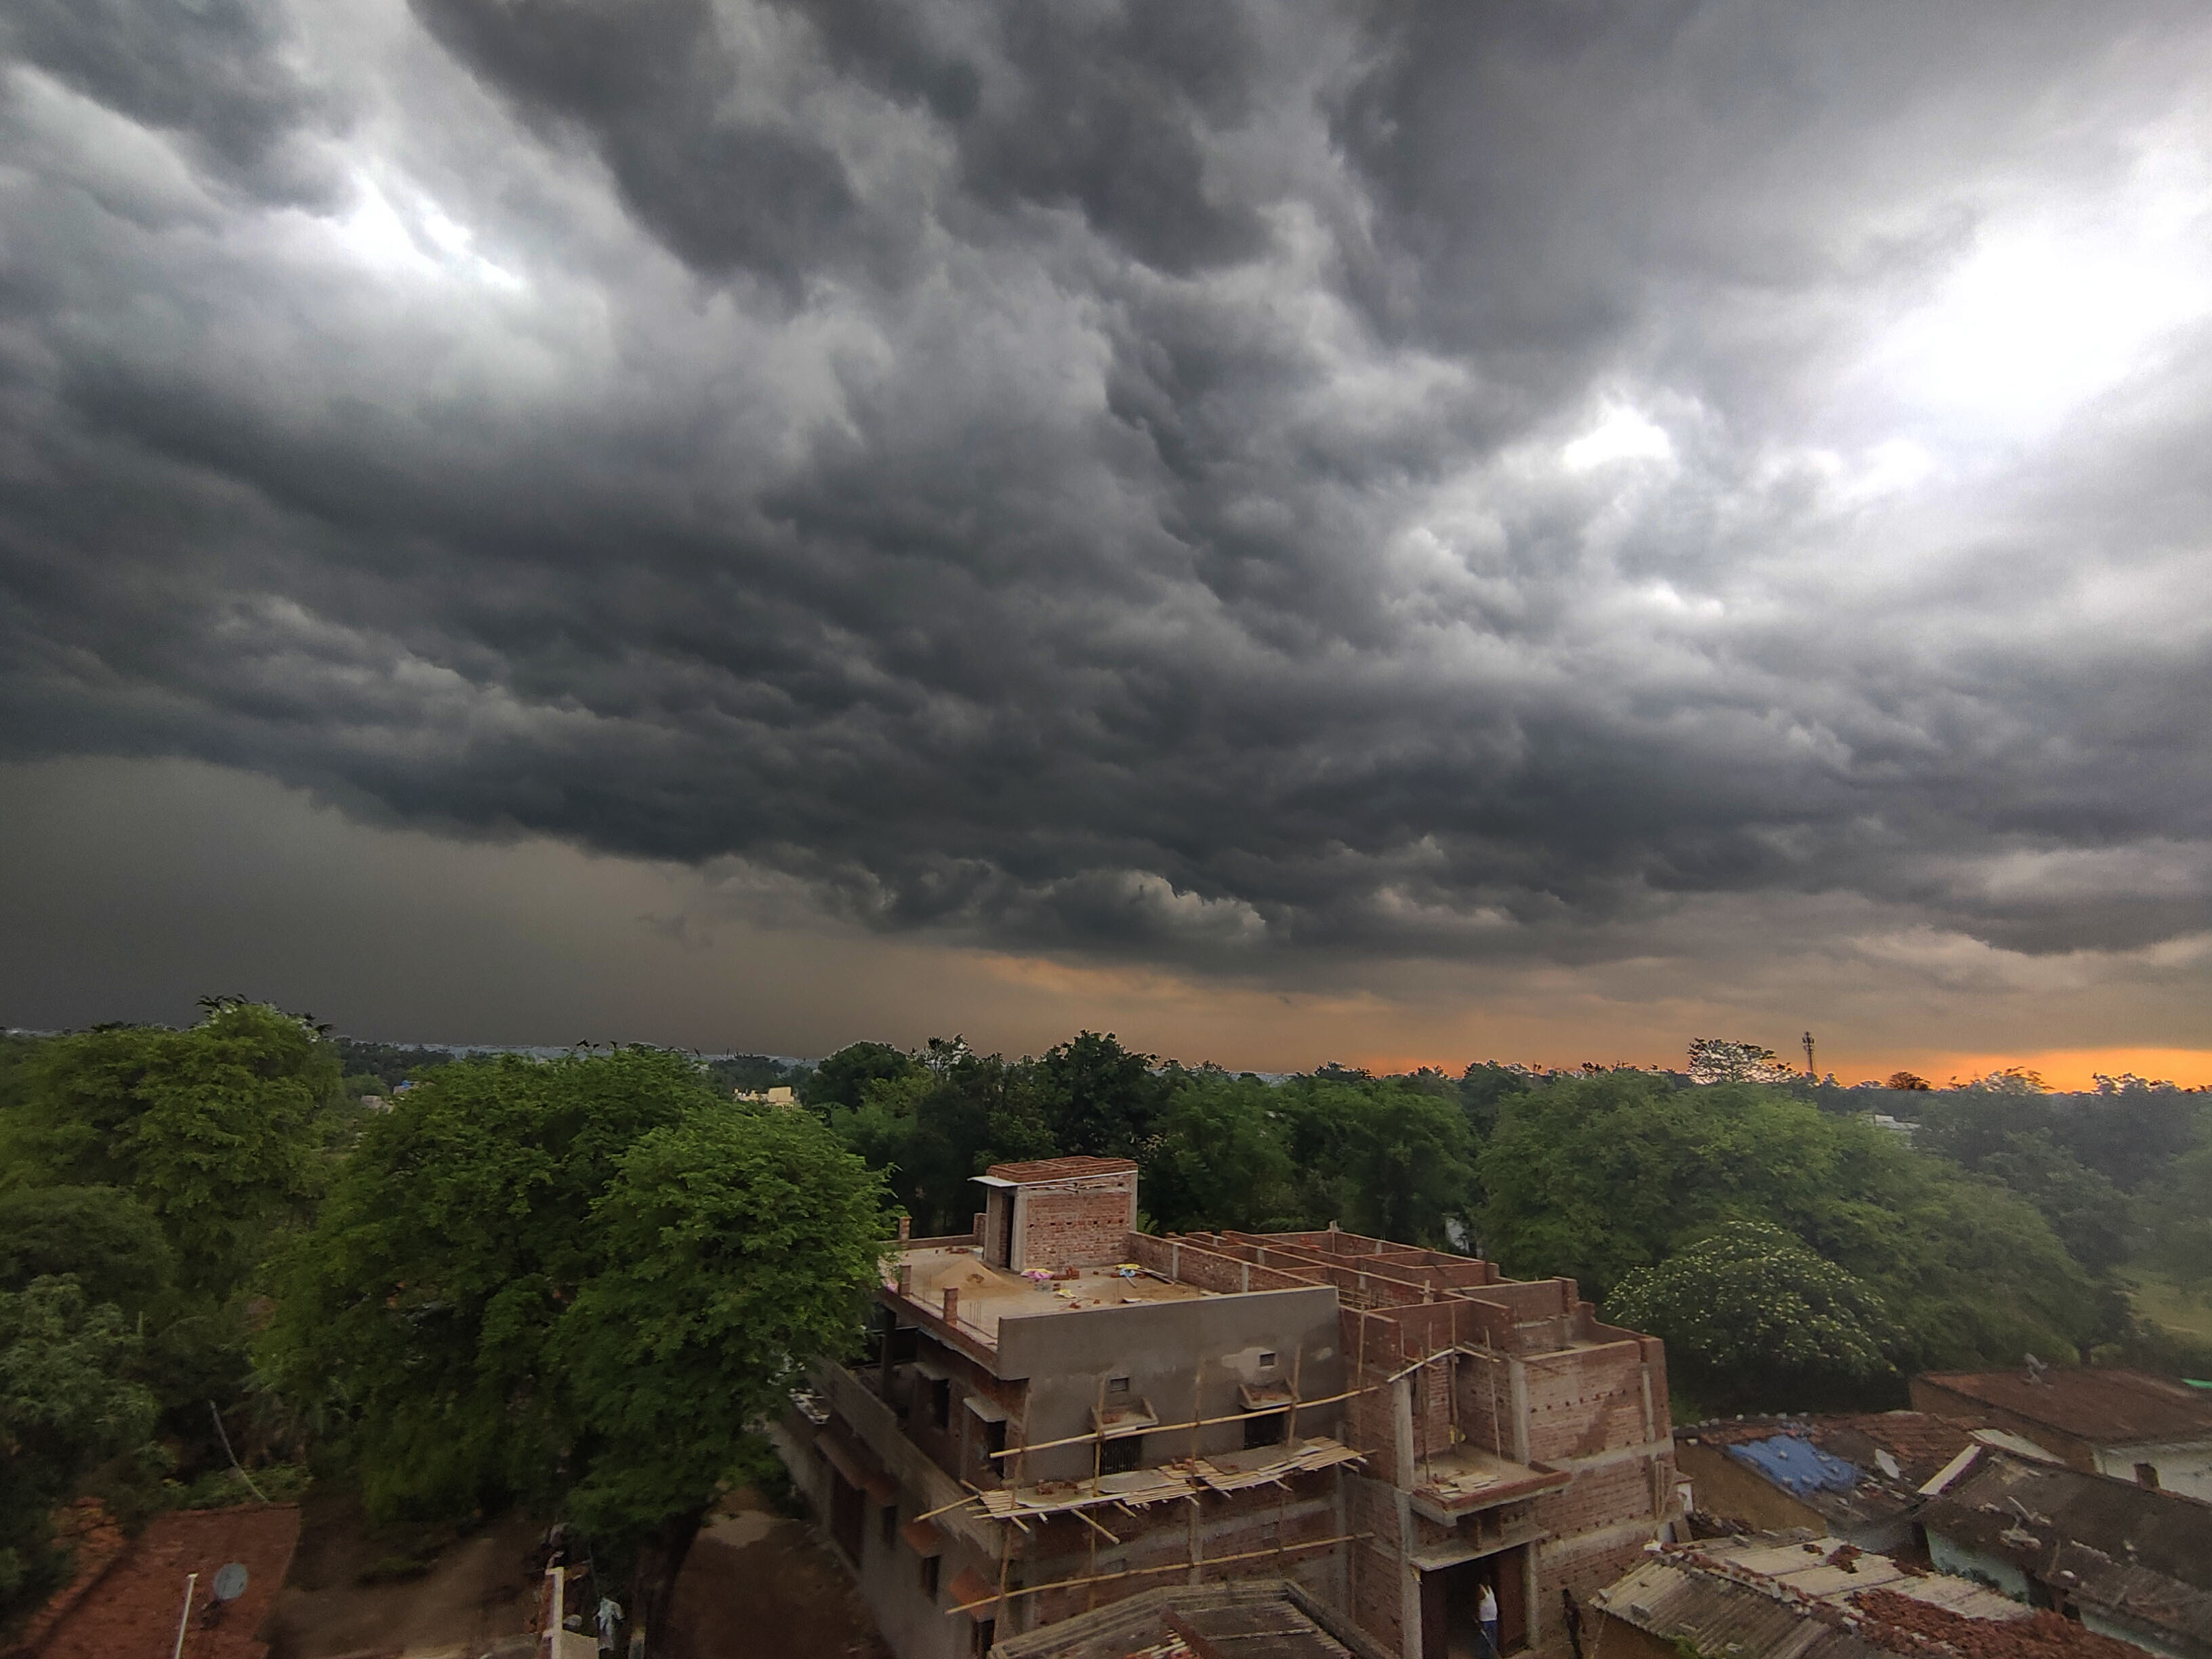 SIGN OF THE TIMES: Ranchi woke up on Monday with an ominous cloud cover. Barely 12 hour earlier on Sunday, IIM-Ranchi was sealed after one of its non-teaching staff members tested positive for Covid-19.